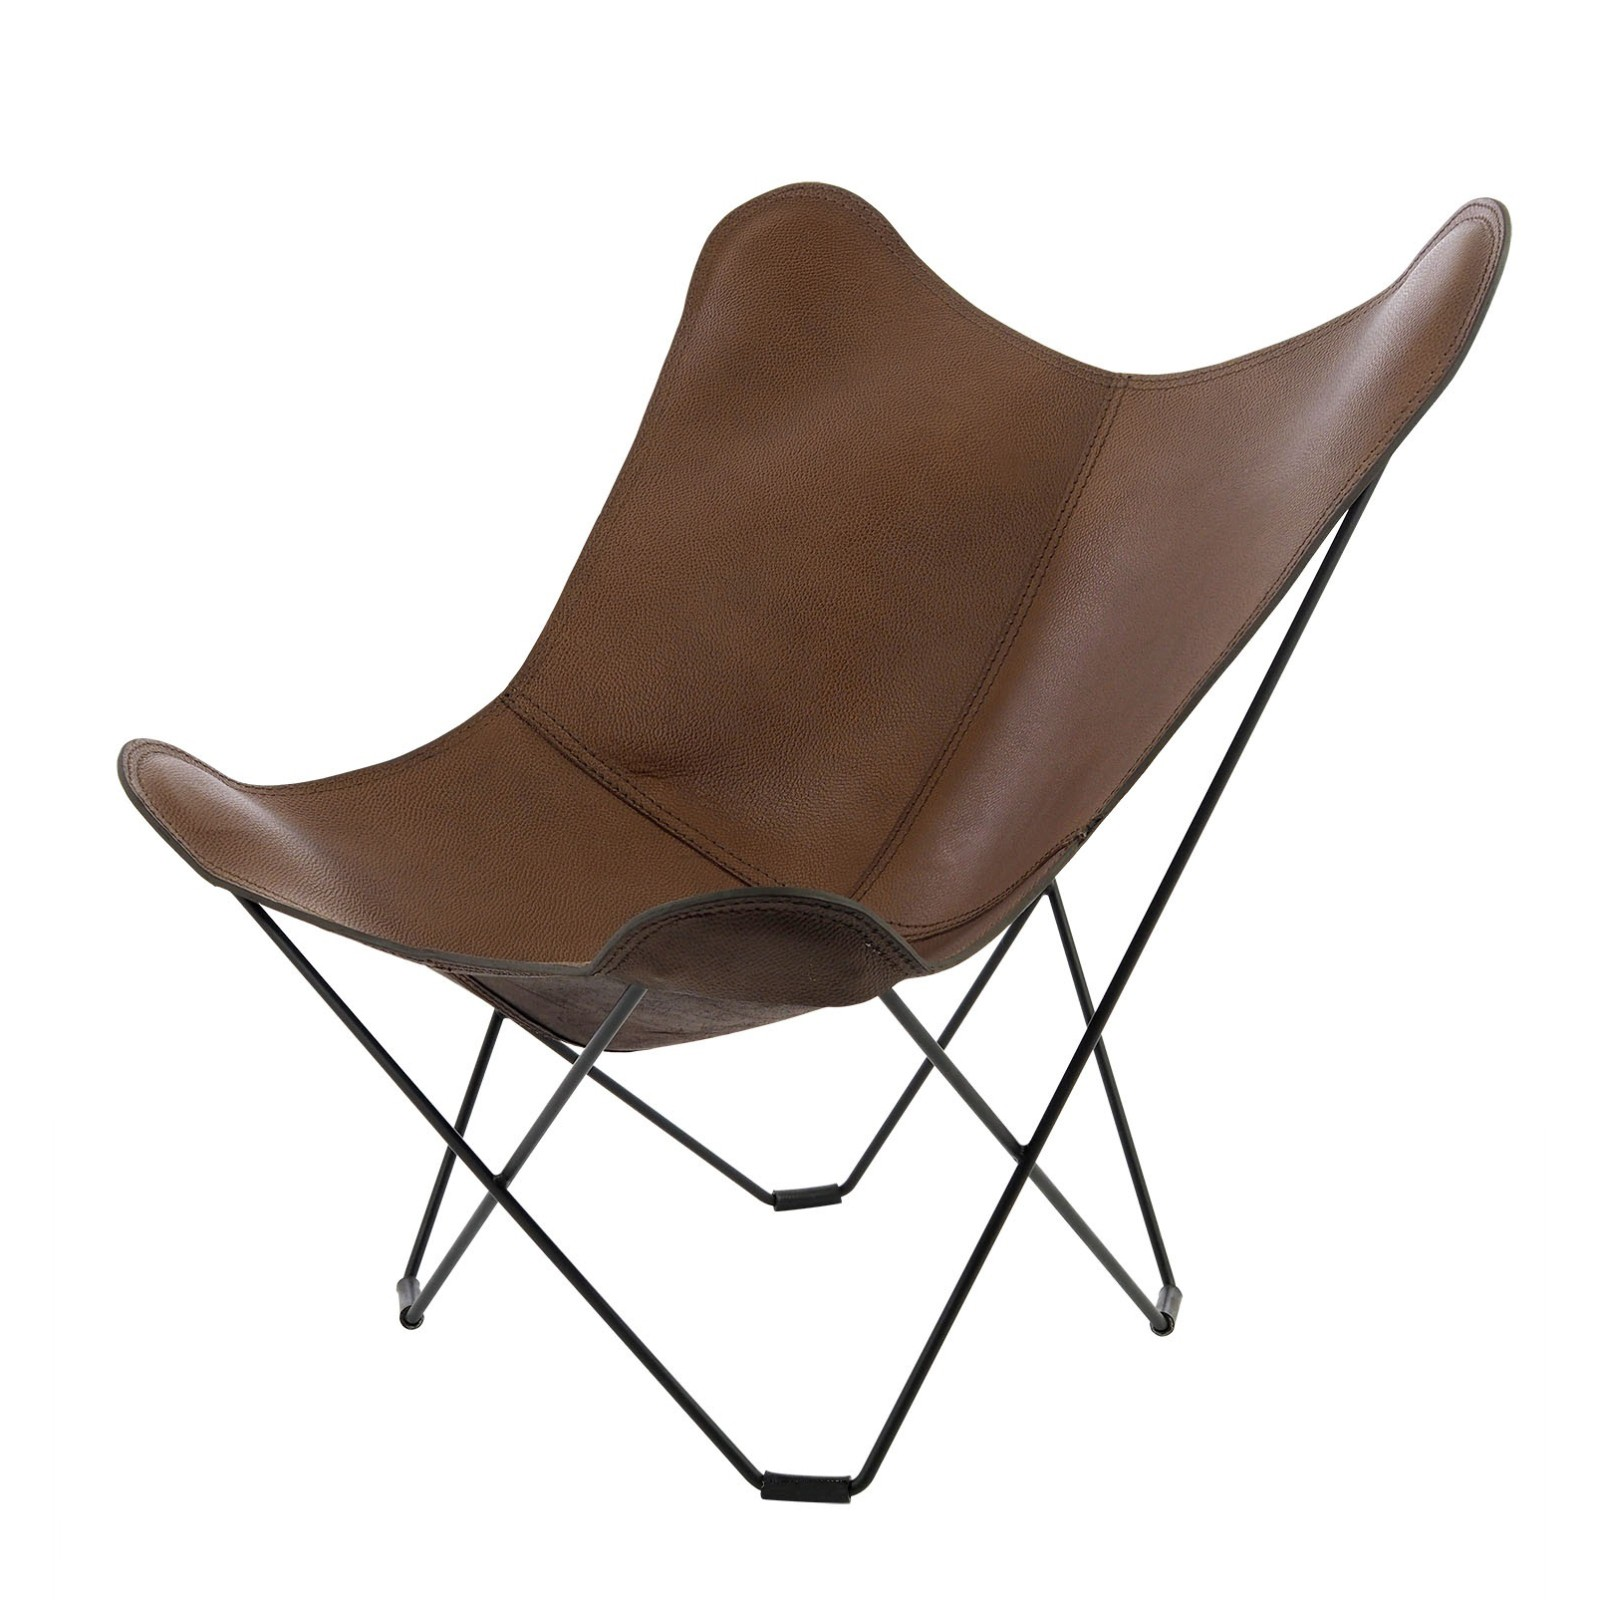 Design Stoel Lounge.Lounge Chair Butterfly Dark Tan